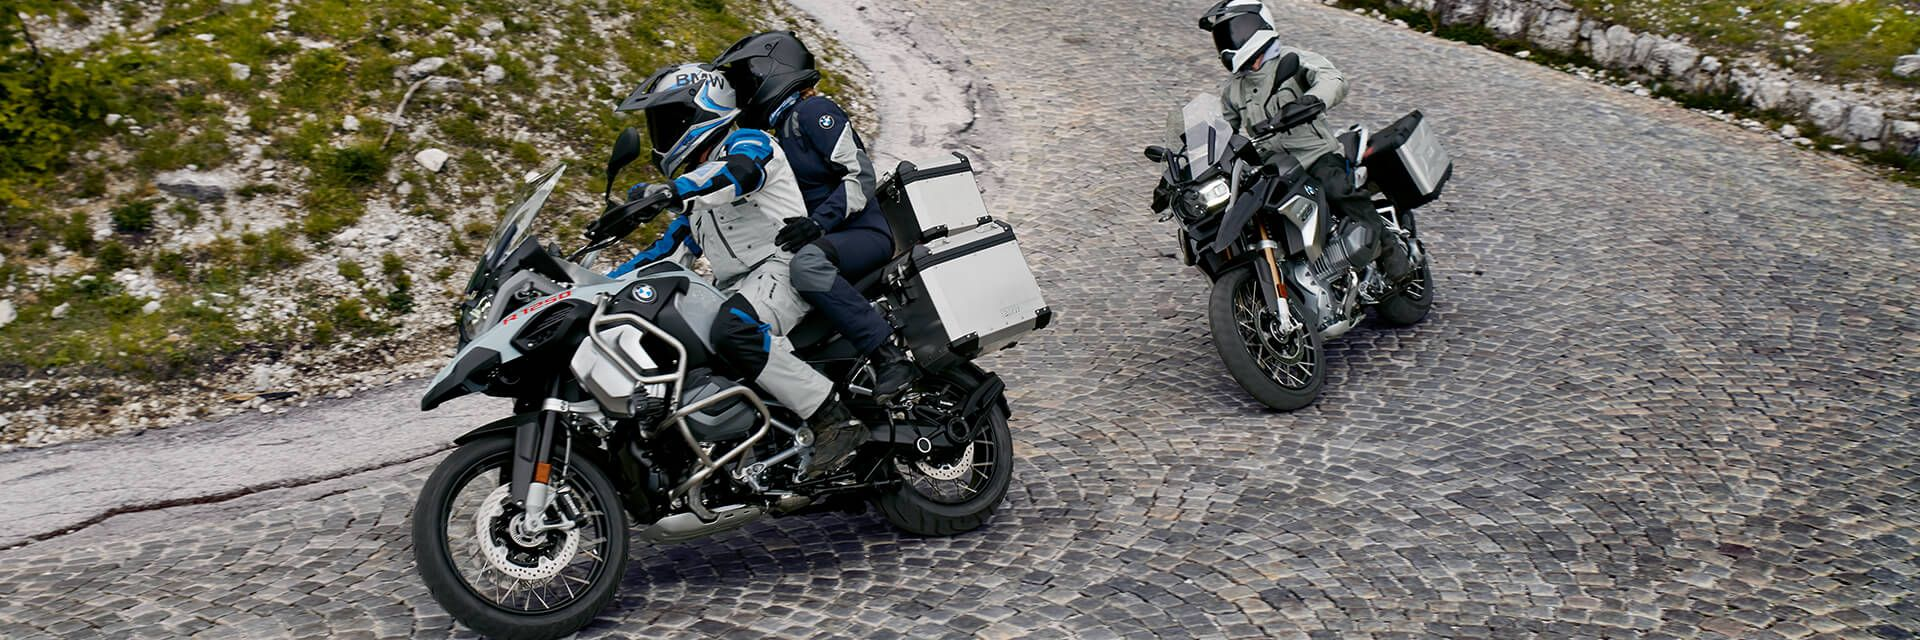 Motorcycles at Touring Sport